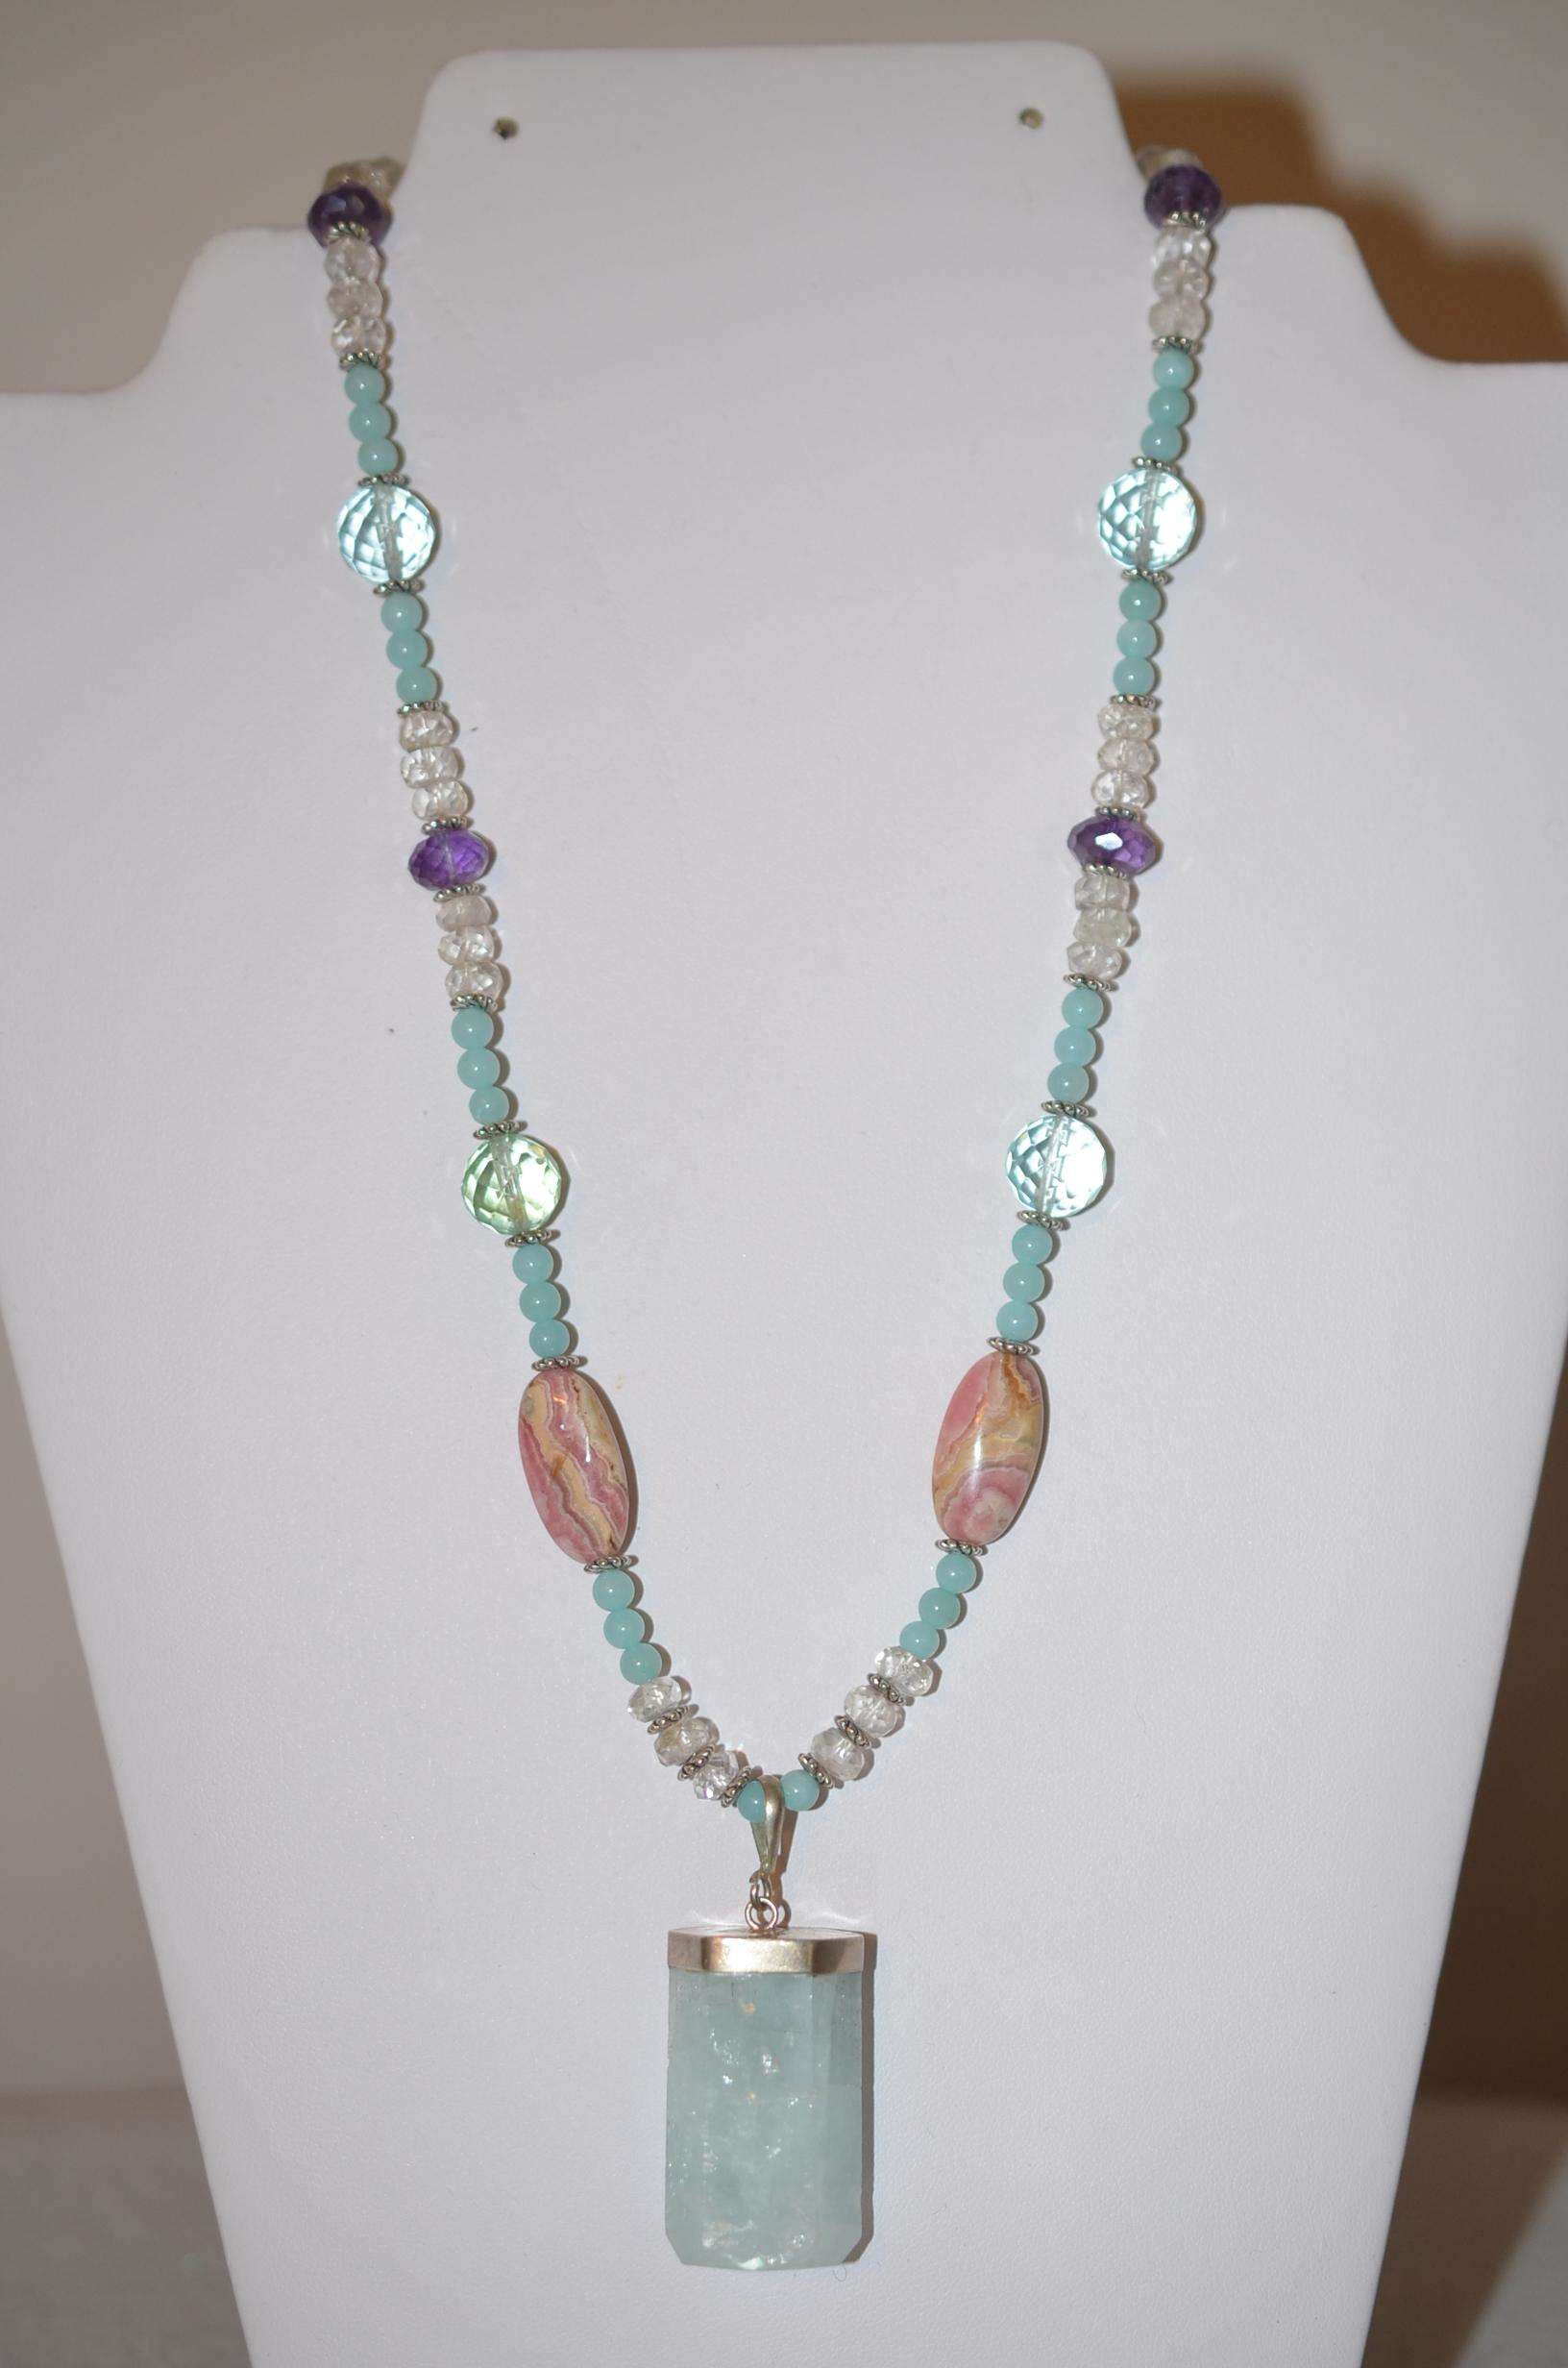 pendant aquamarine christie online necklace eco christies s jewels